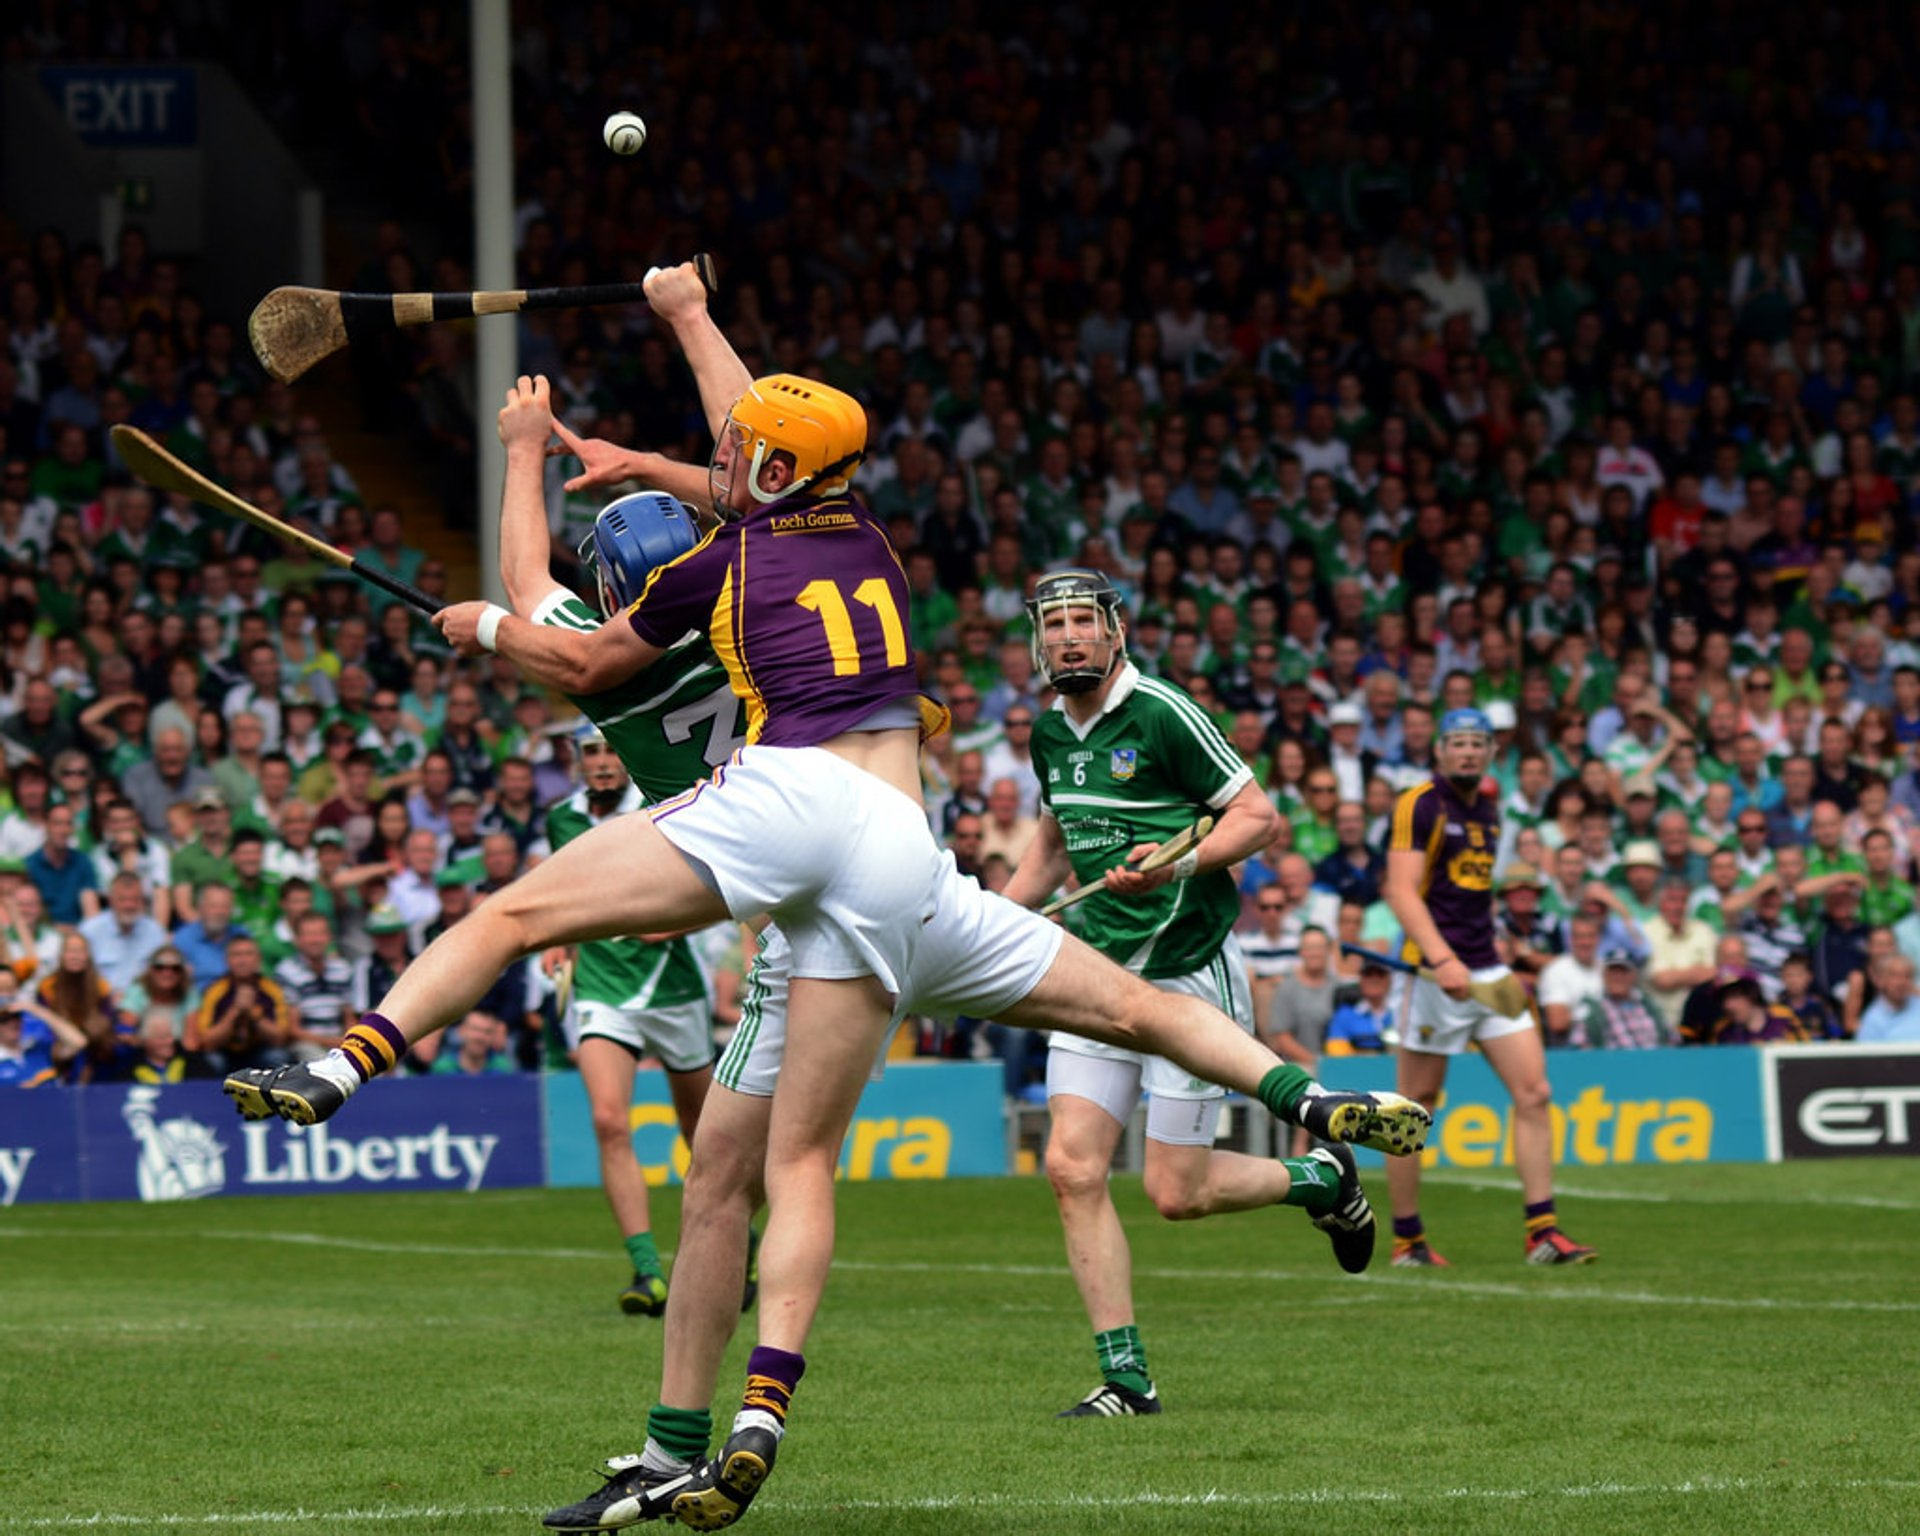 Hurling in Ireland - Best Time